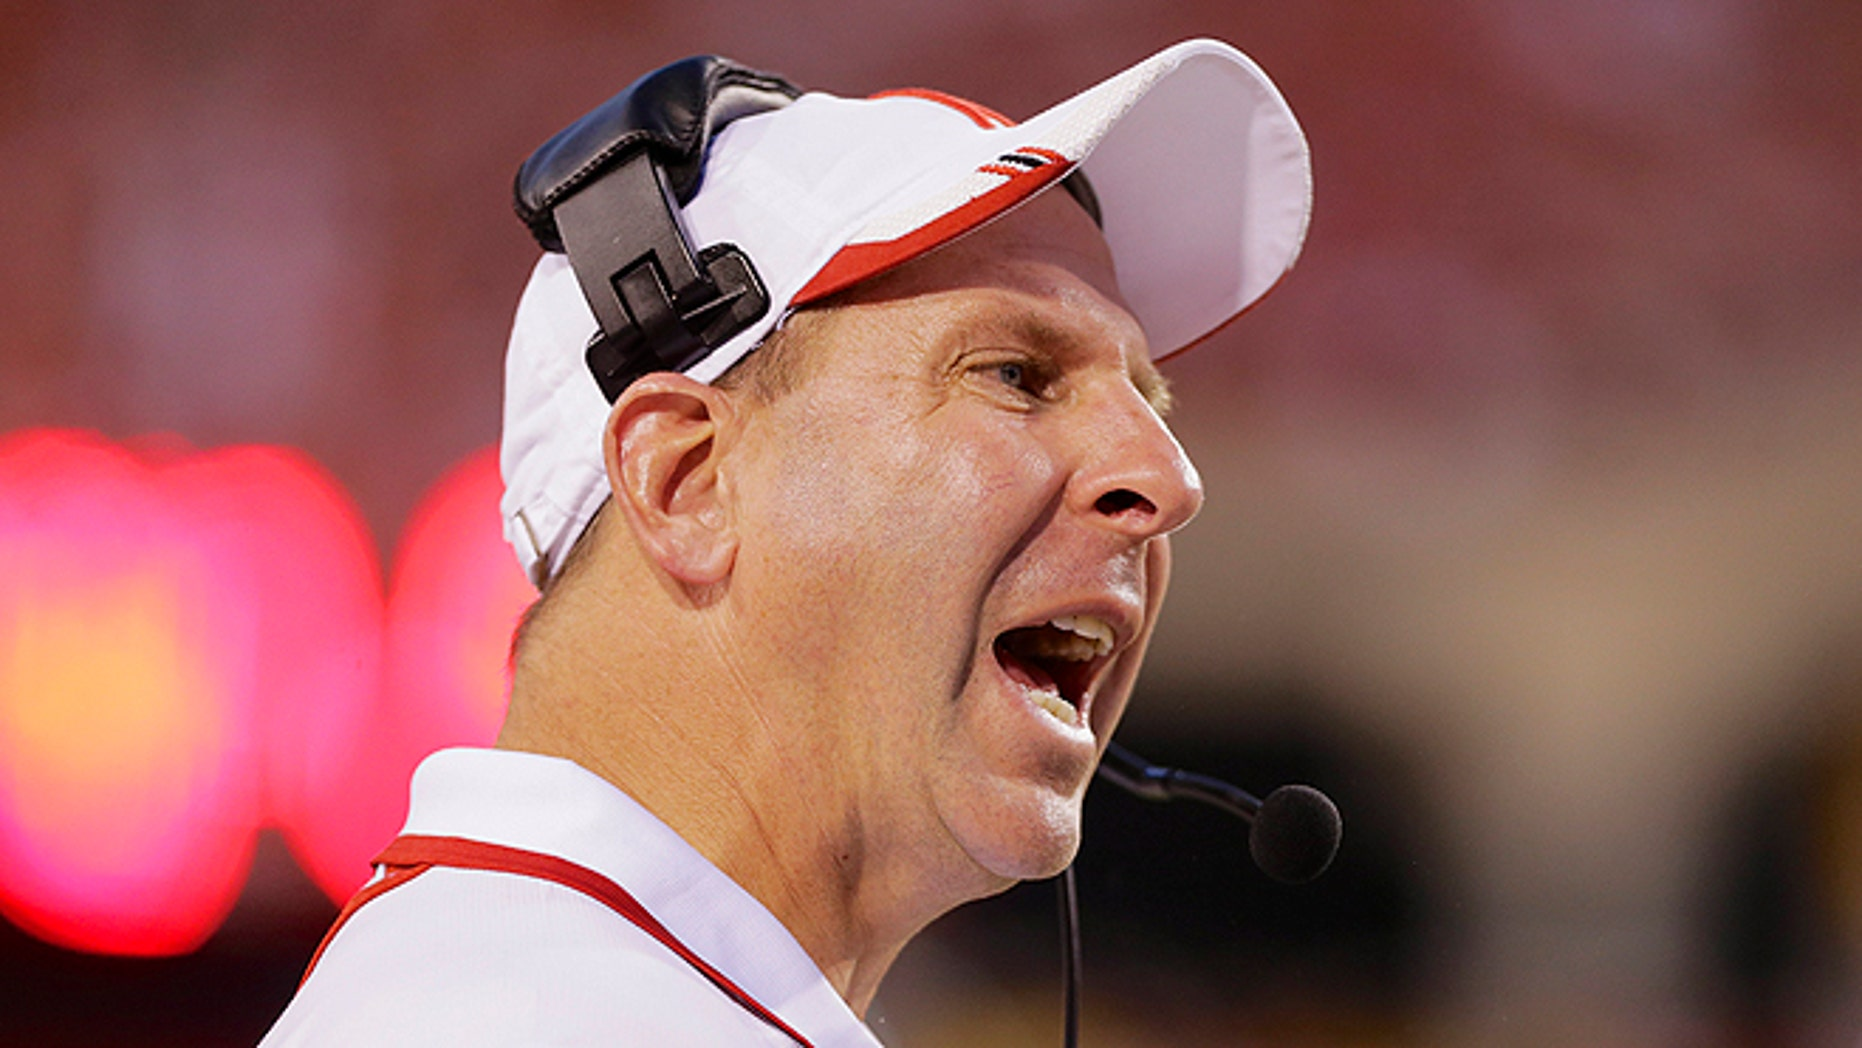 Sept. 7, 2013: Nebraska head coach Bo Pelini yells instructions in the second half of an NCAA college football game against Southern Mississippi in Lincoln, Neb. Nebraska Chancellor Harvey Perlman and athletic director Shawn Eichorst say they believe football coach Bo Pelini is sincere in his apology for a profane rant against fans two years ago and the university is ready to put the matter to rest. (AP/Nati Harnik, File)